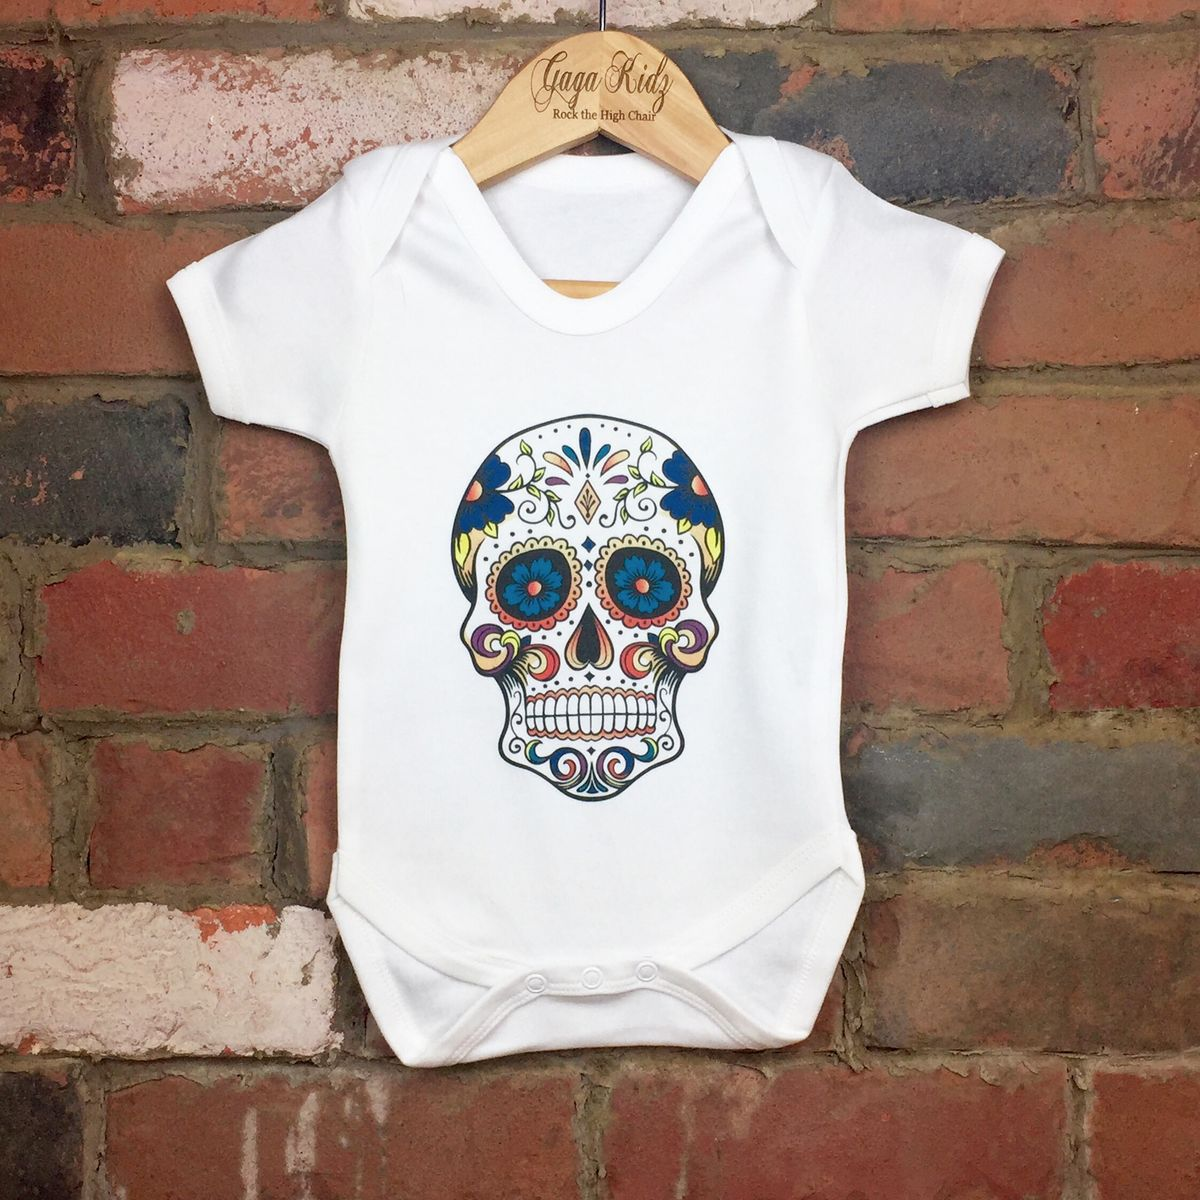 Sugar Skull Baby/Toddler Bodysuit (various sizes) - product images  of